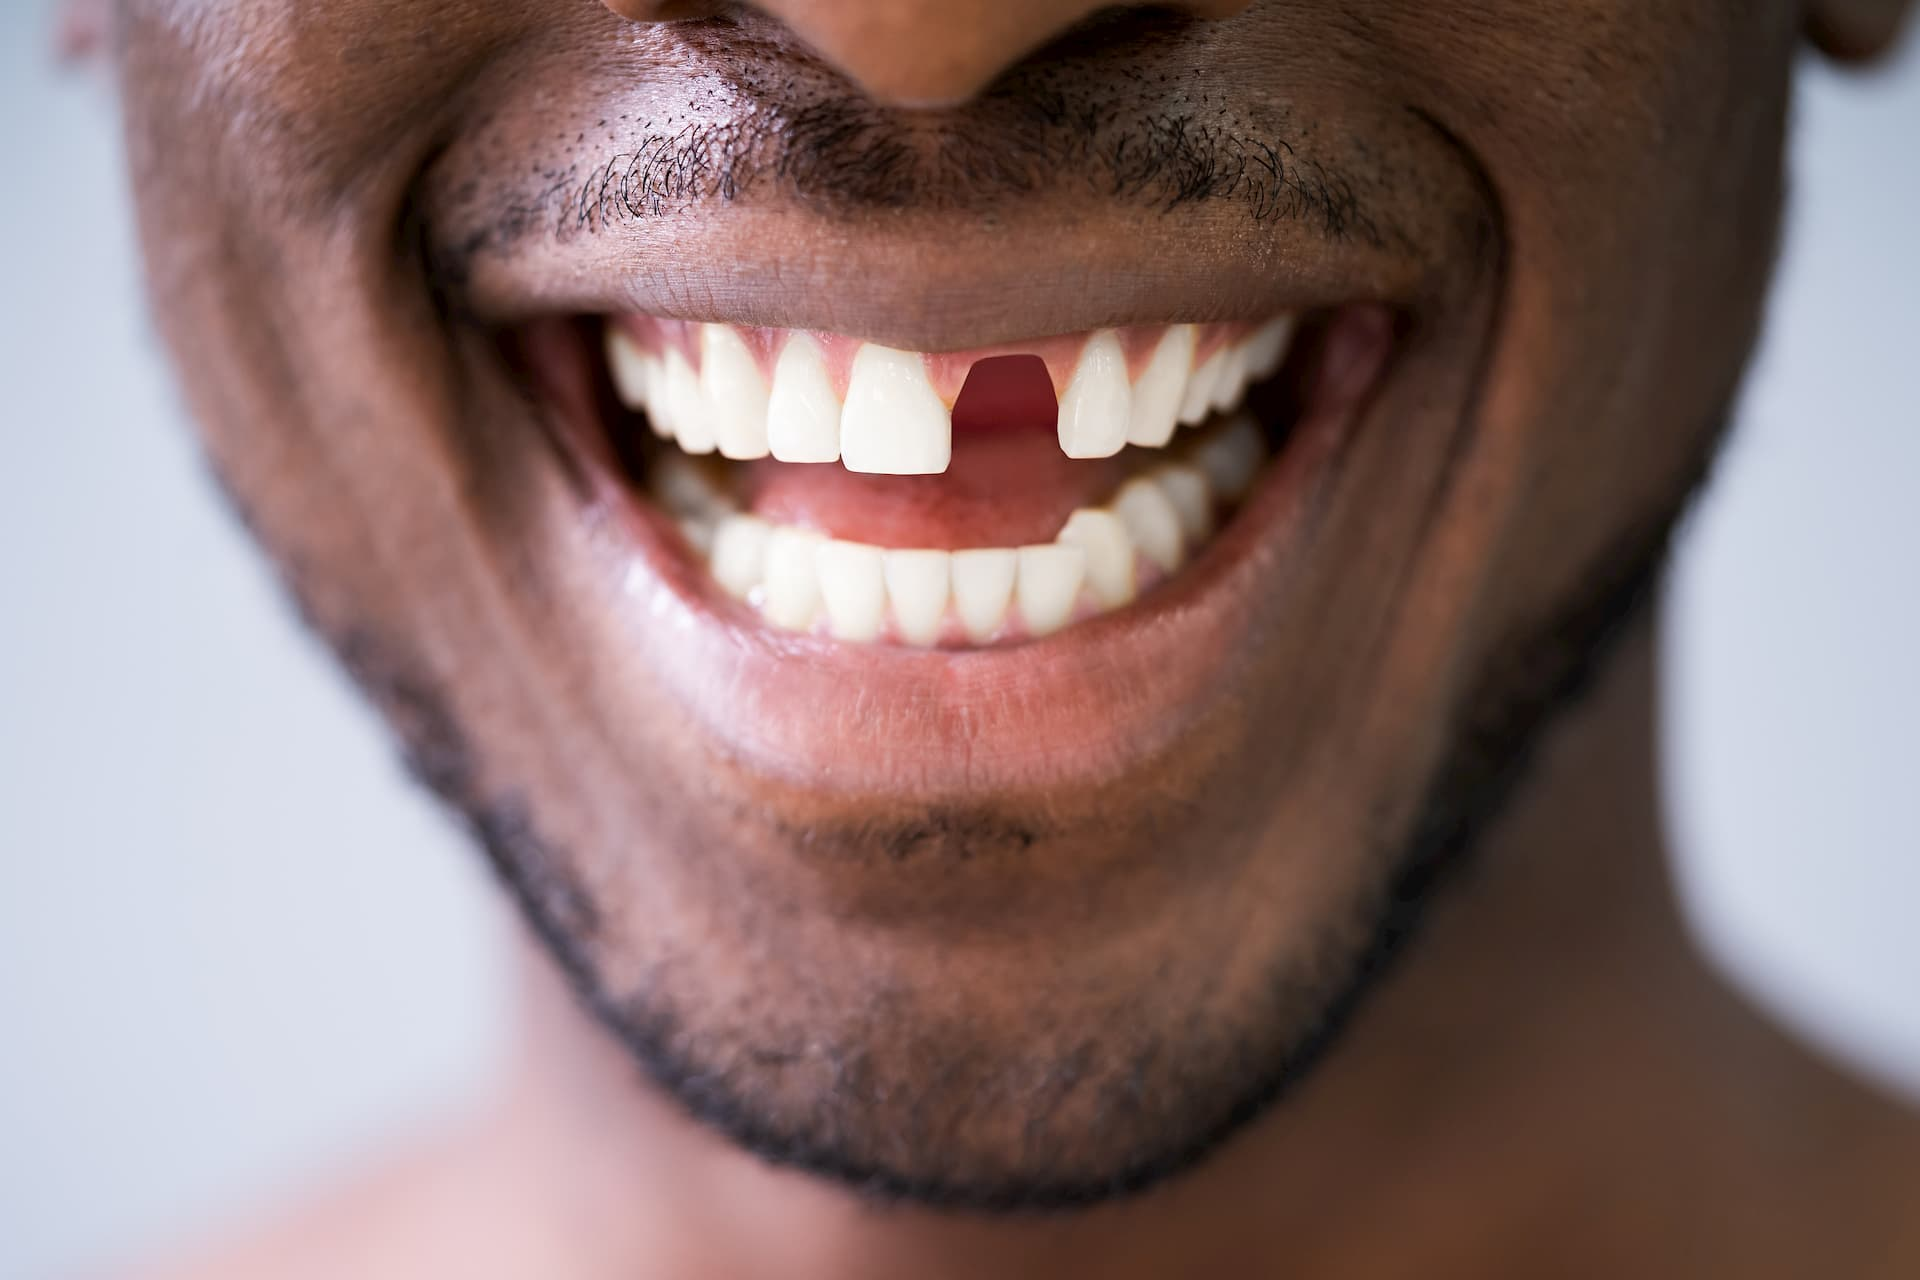 Man-with-missing-front-tooth